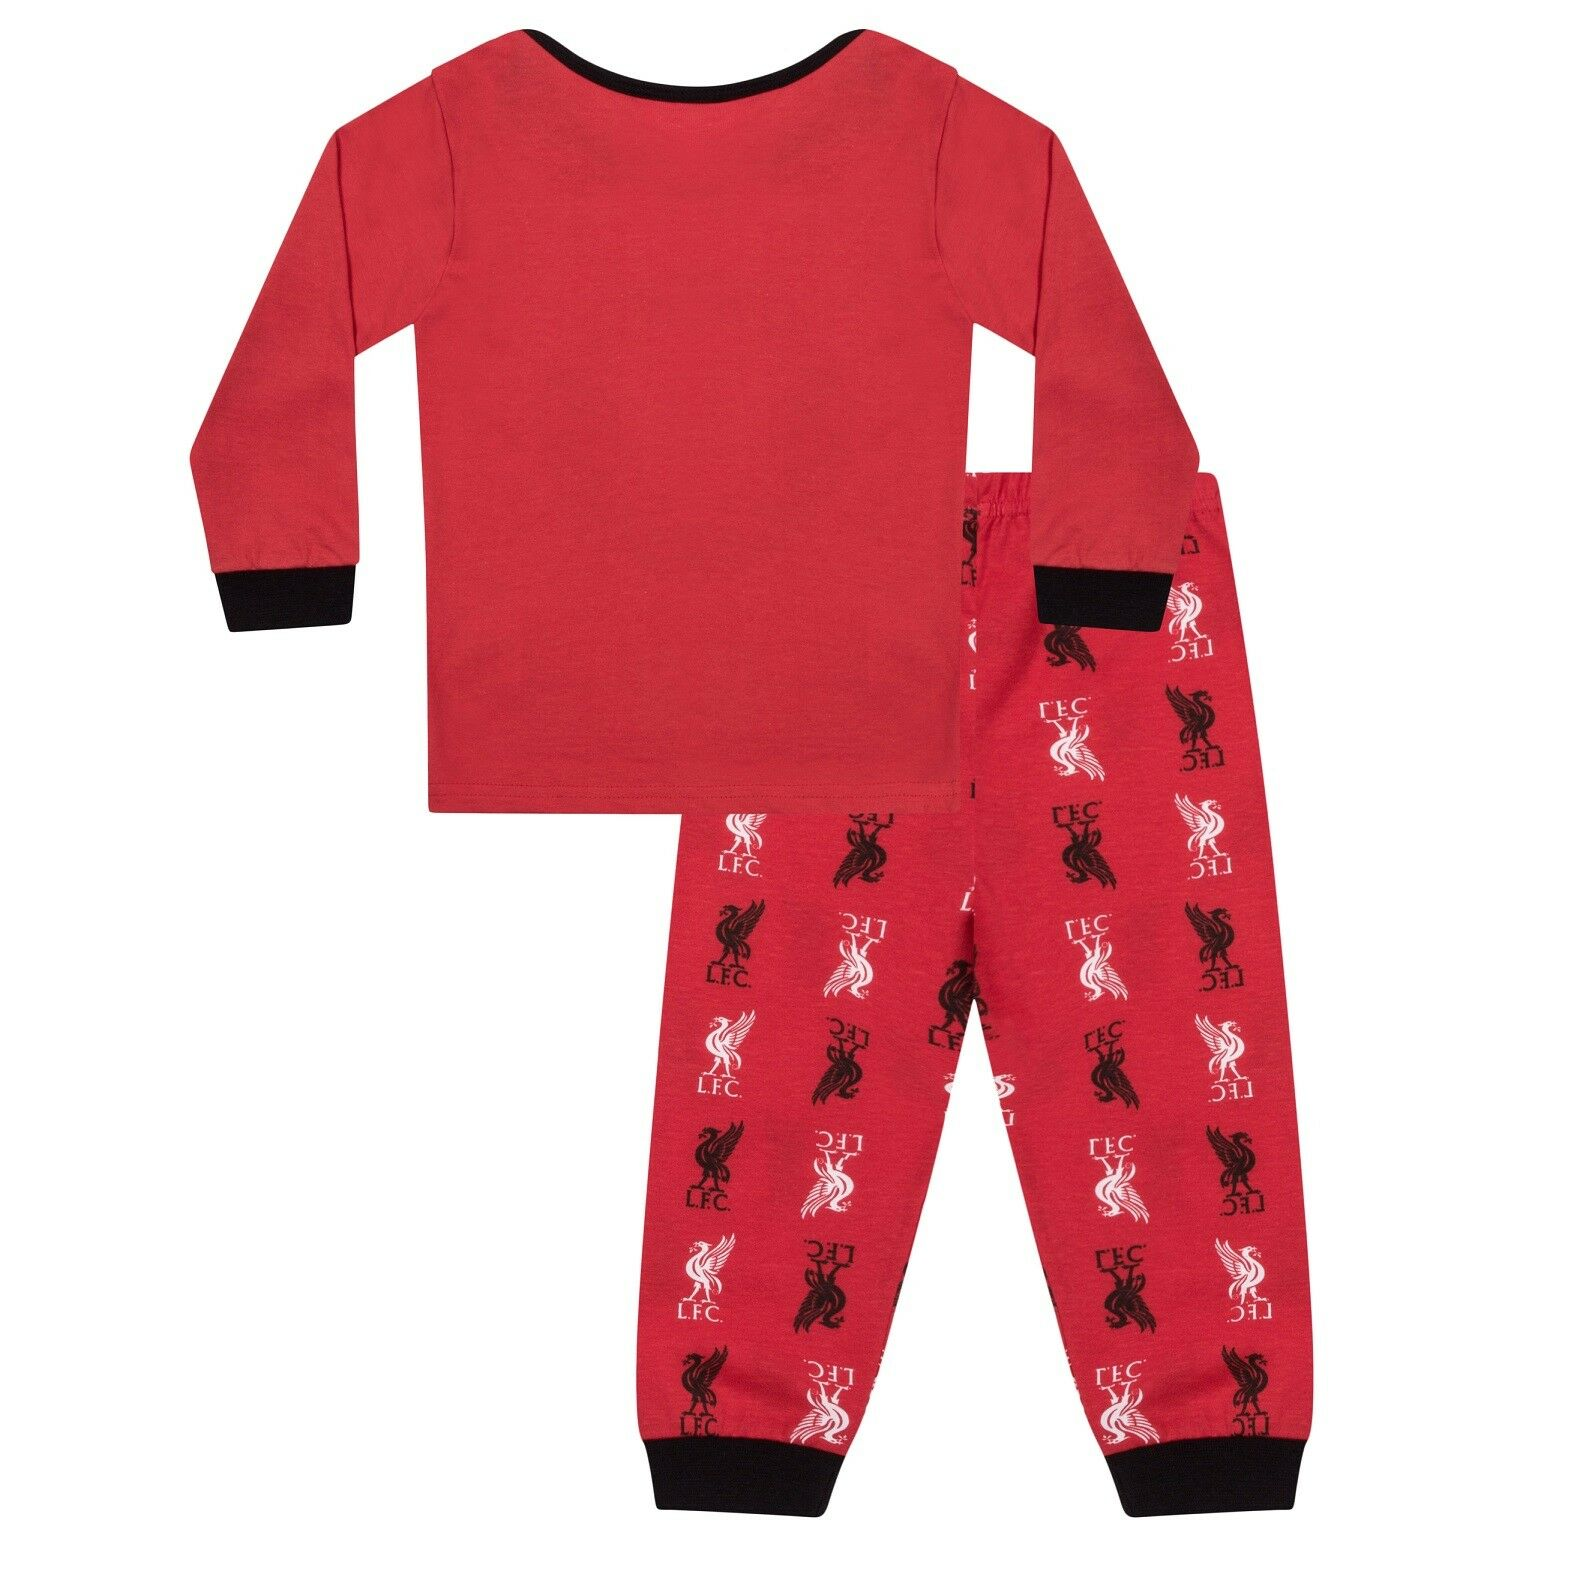 31042094a5be LFC Liverpool Football Club Offical Baby PJs Pyjamas 6-9 Months for ...